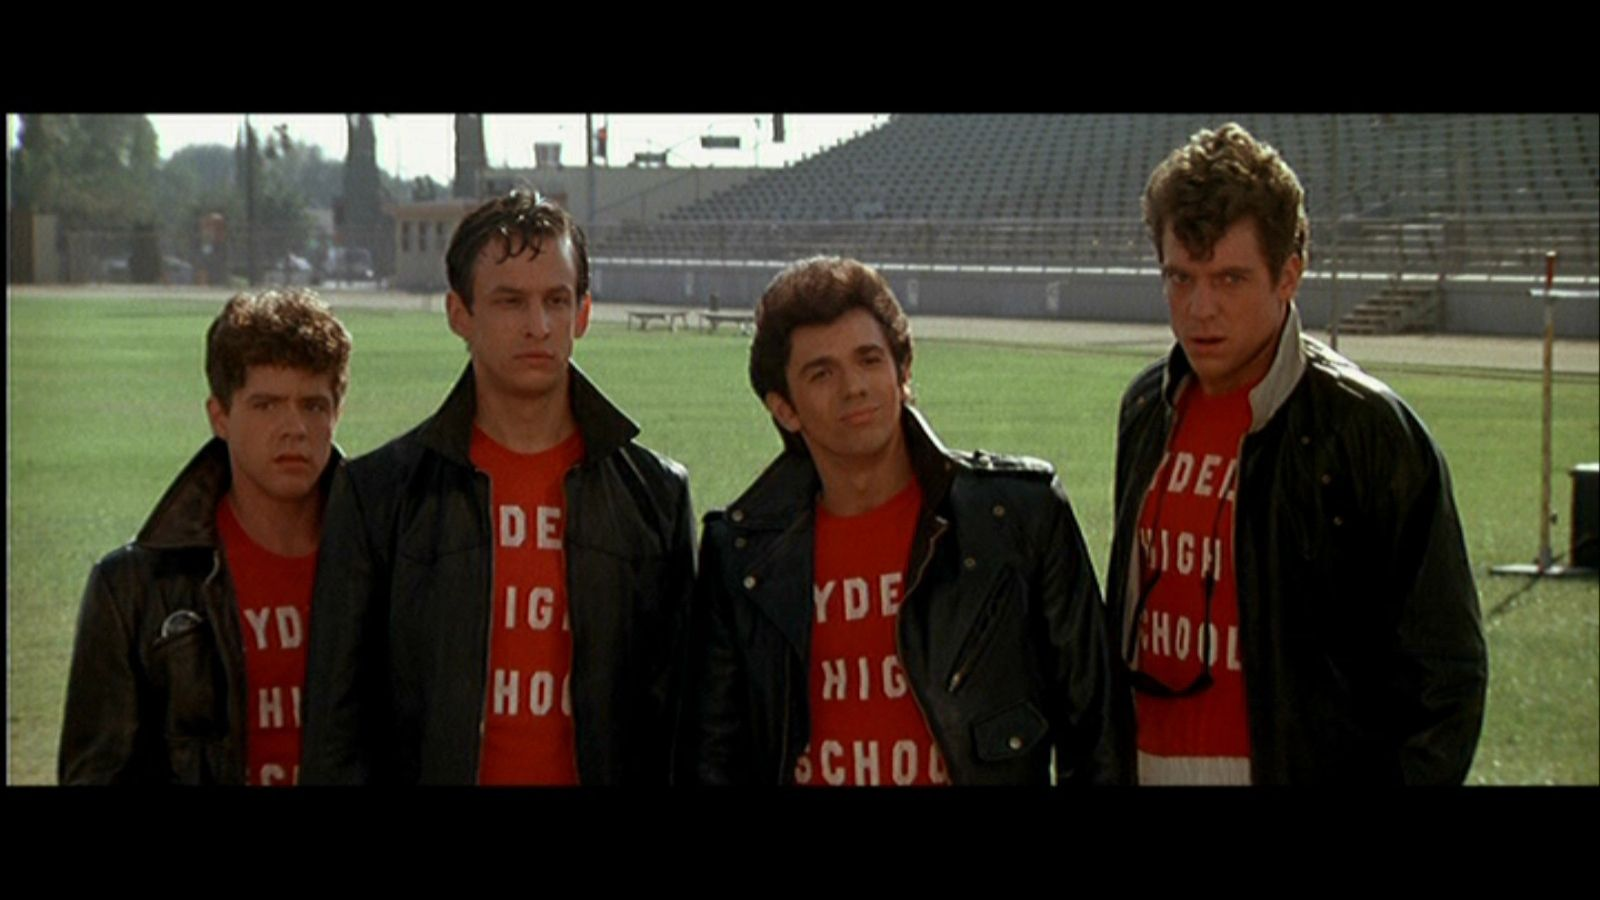 grease | Grease 2 T-Birds | TV Shows/Movies | Pinterest | Movie